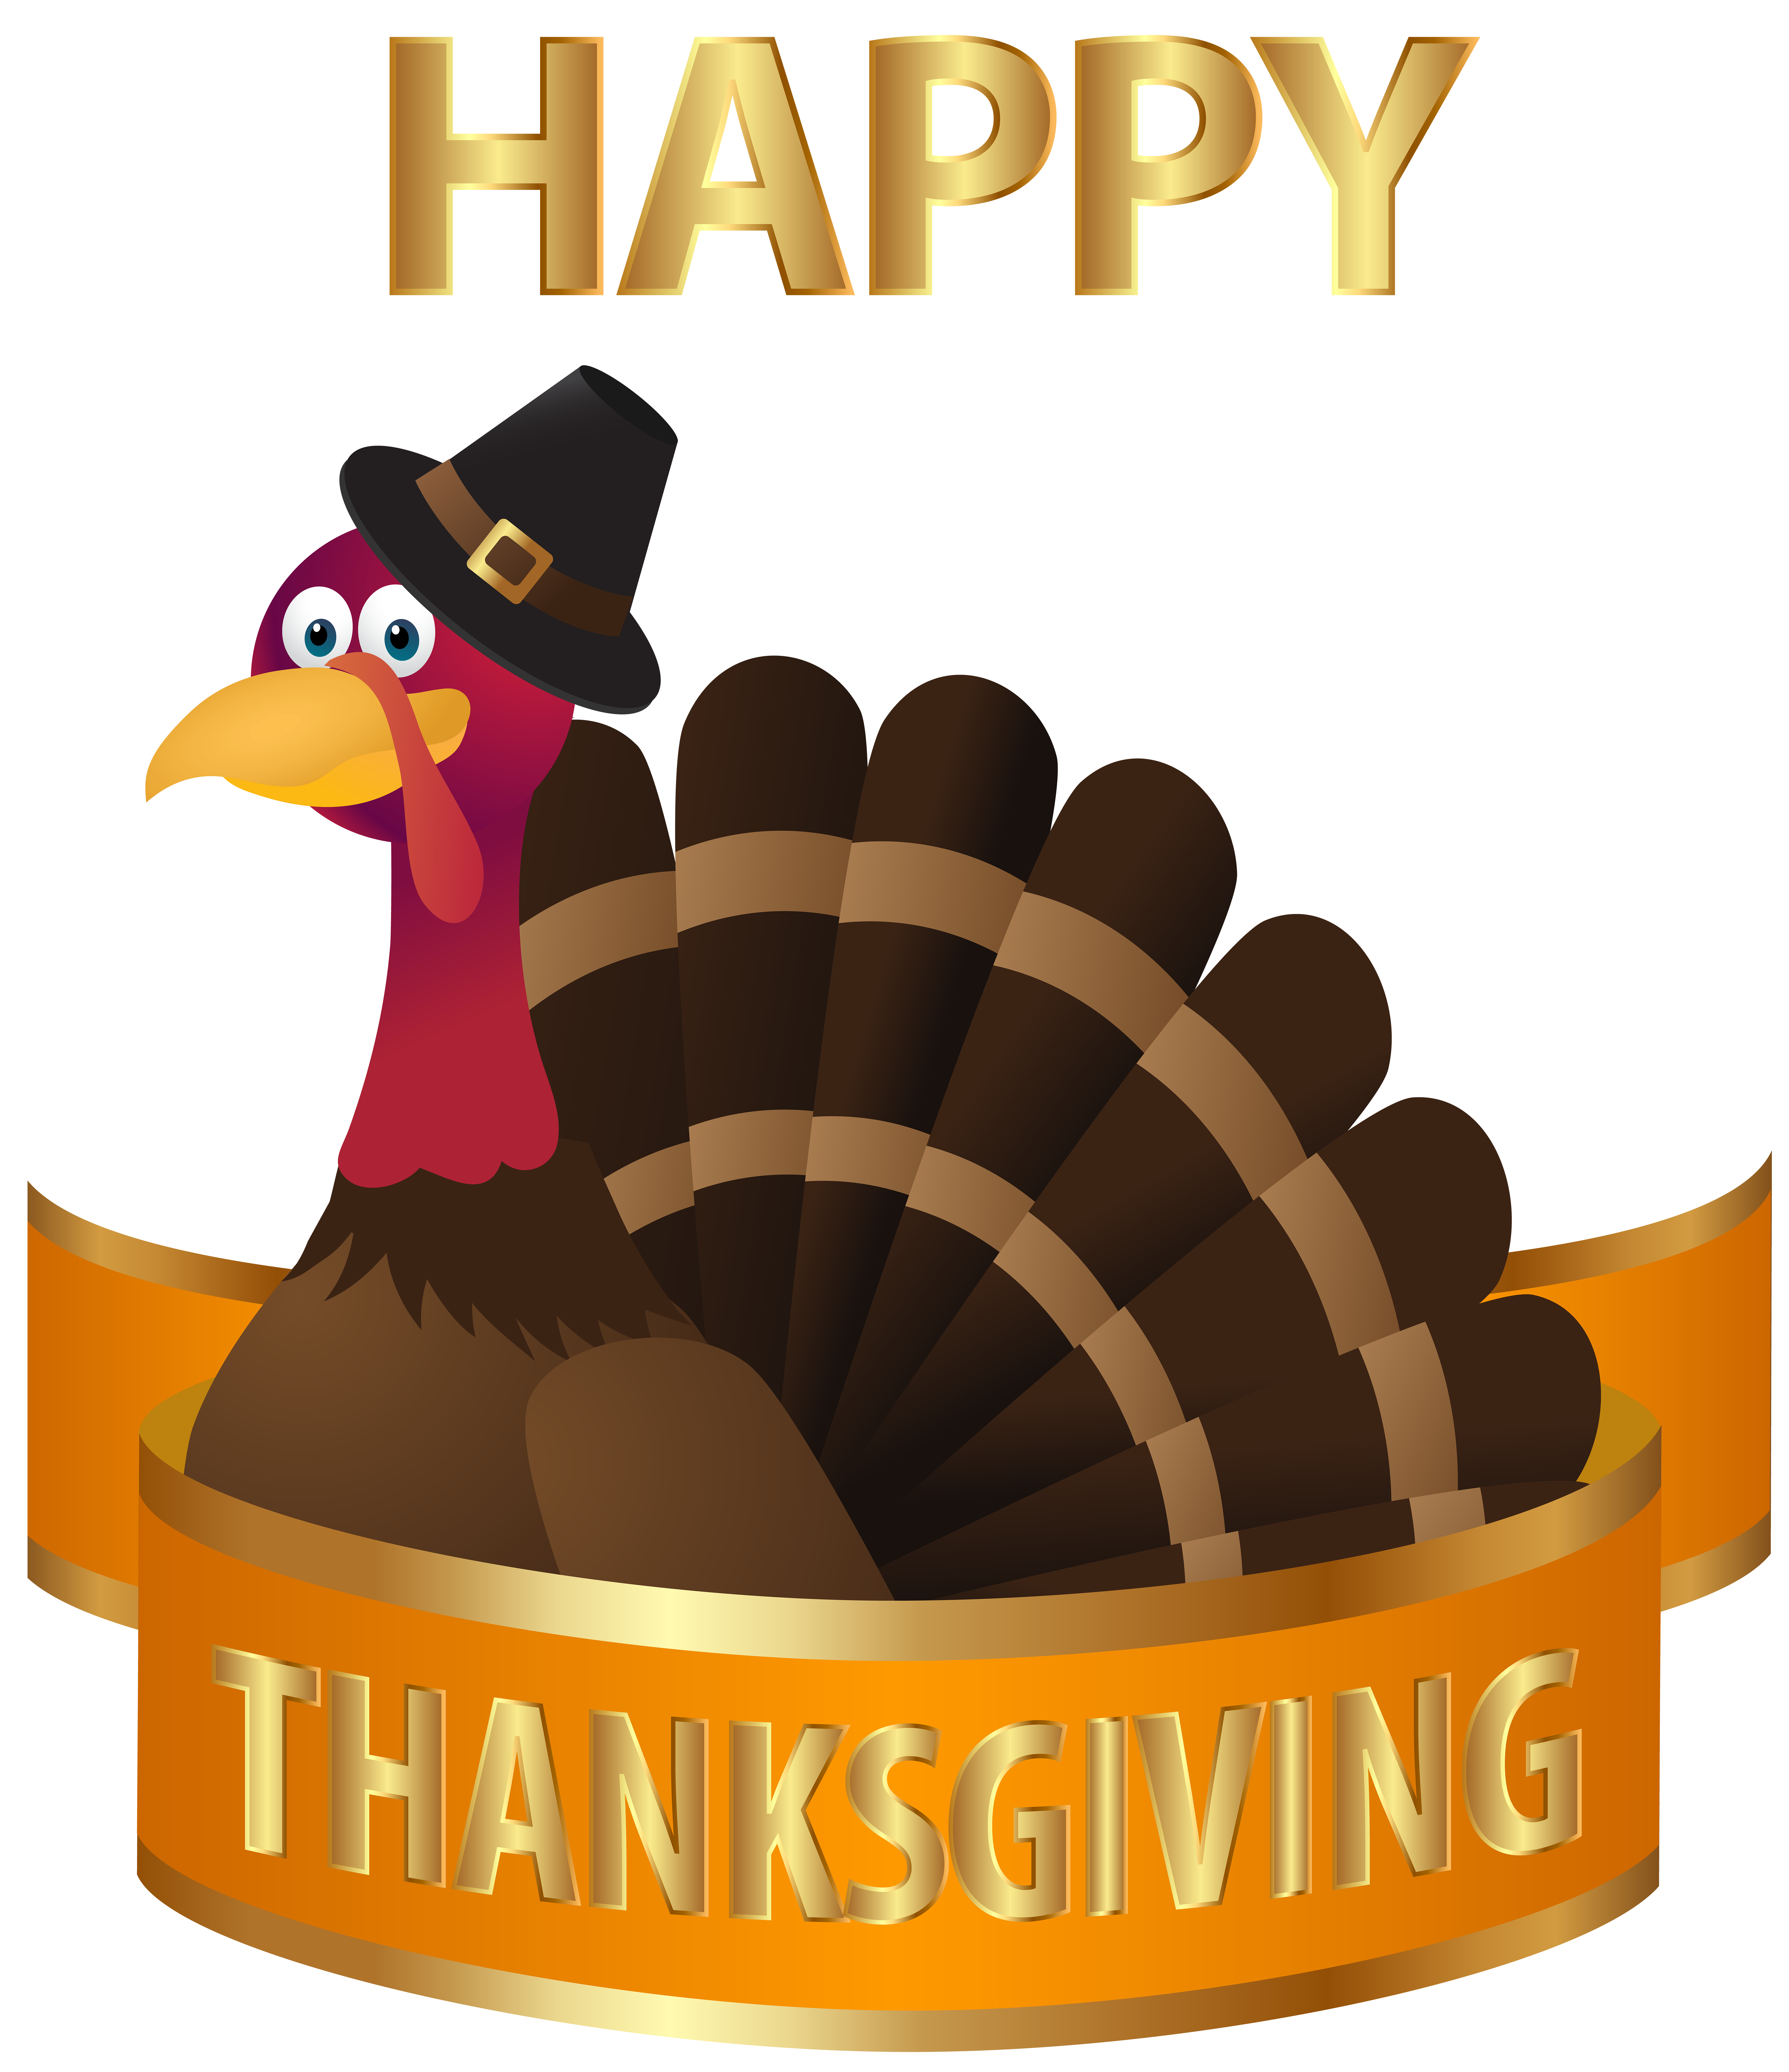 Thanksgiving transparent png image. Clipart turkey happy